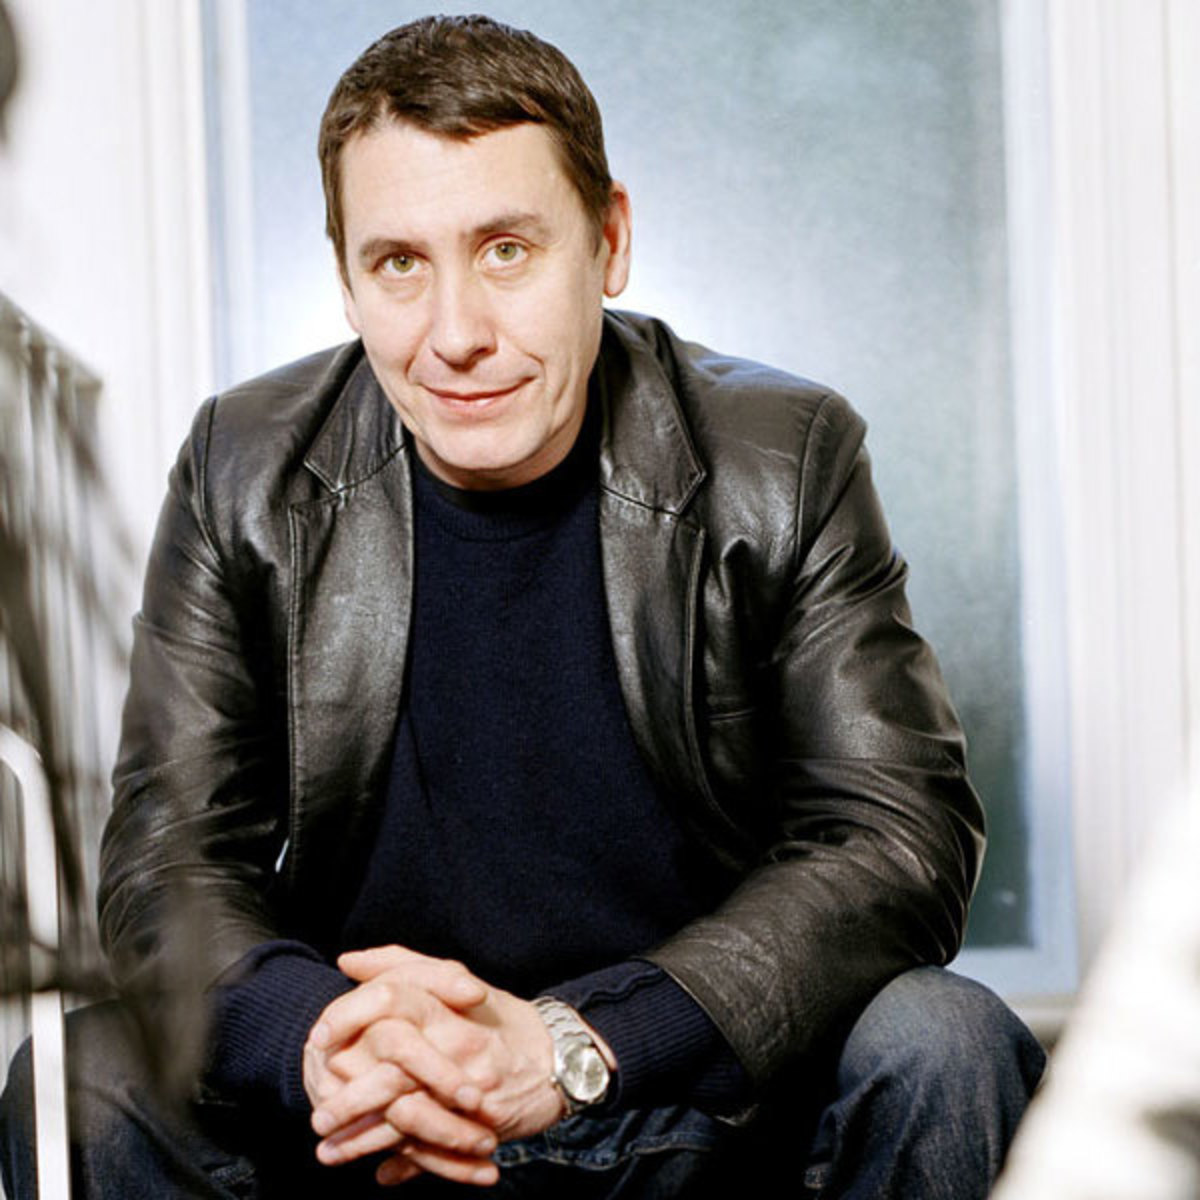 Articlehome laterwithjoolsholland02bbc180412 1